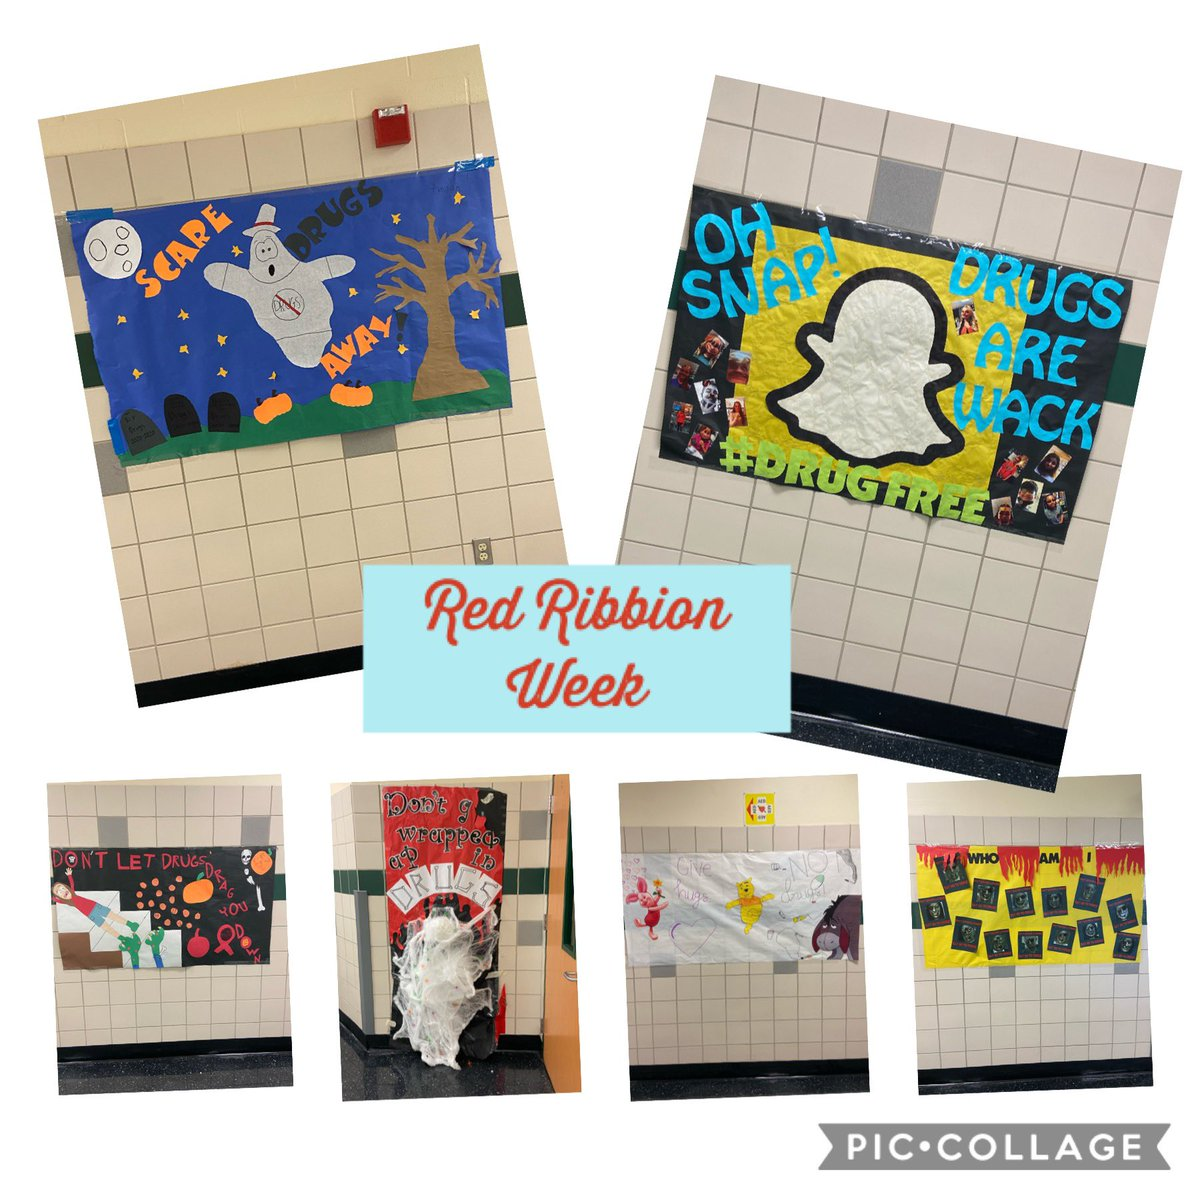 Love seeing all the banners in the hall for Red Ribbon Week! #RRW2020 @PISDReynolds